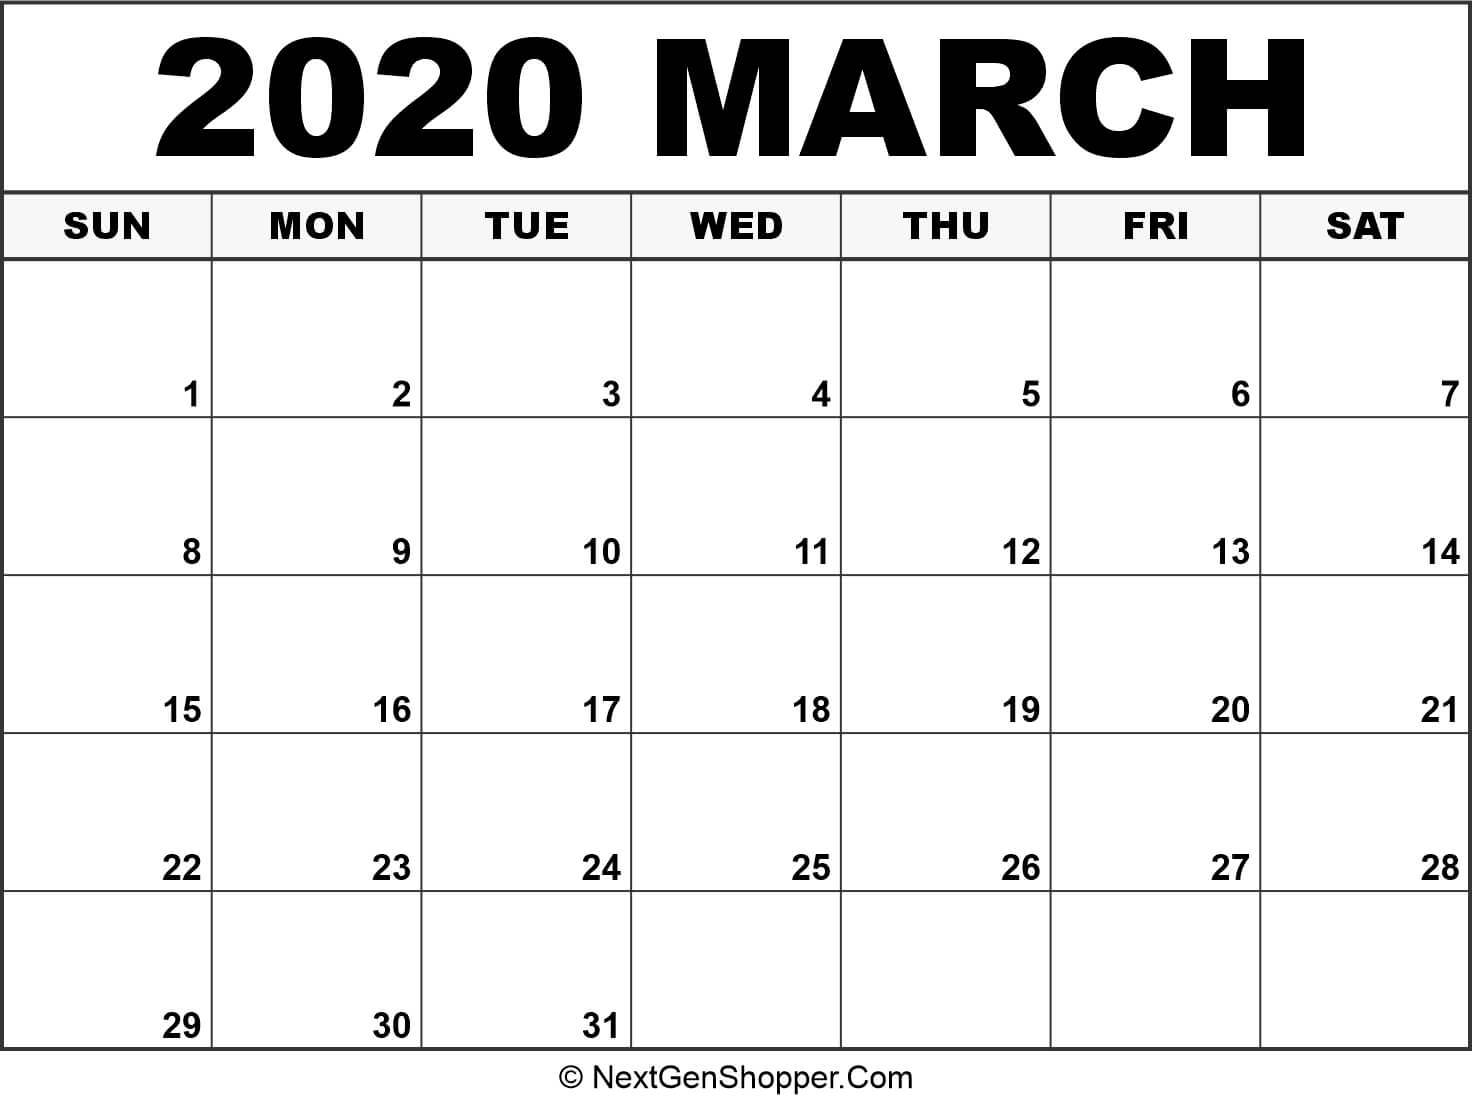 Printable March 2020 Calendar Template - Task Management Guide